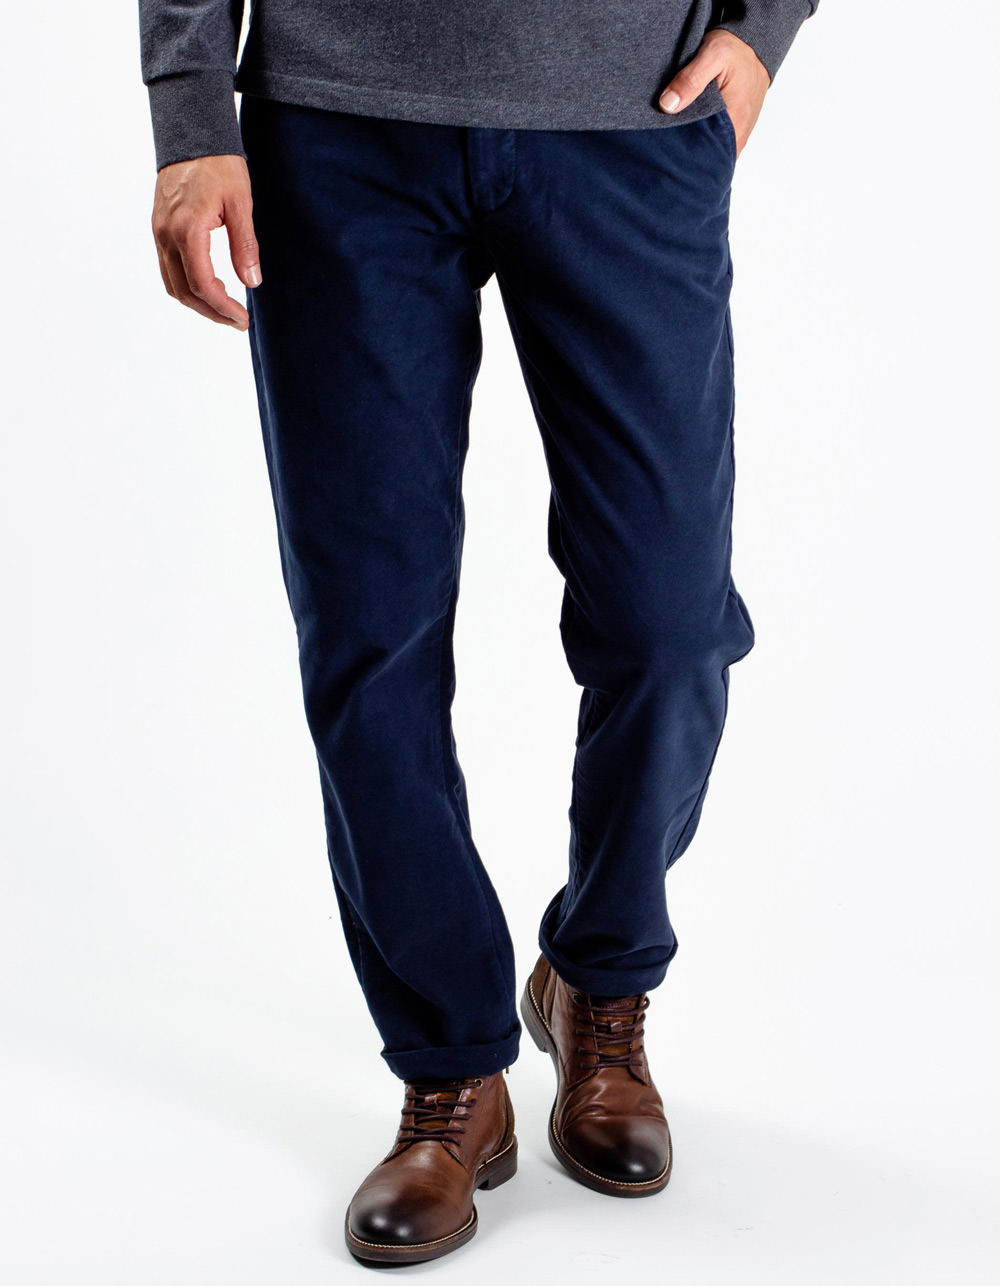 Dark Navy chinos trousers